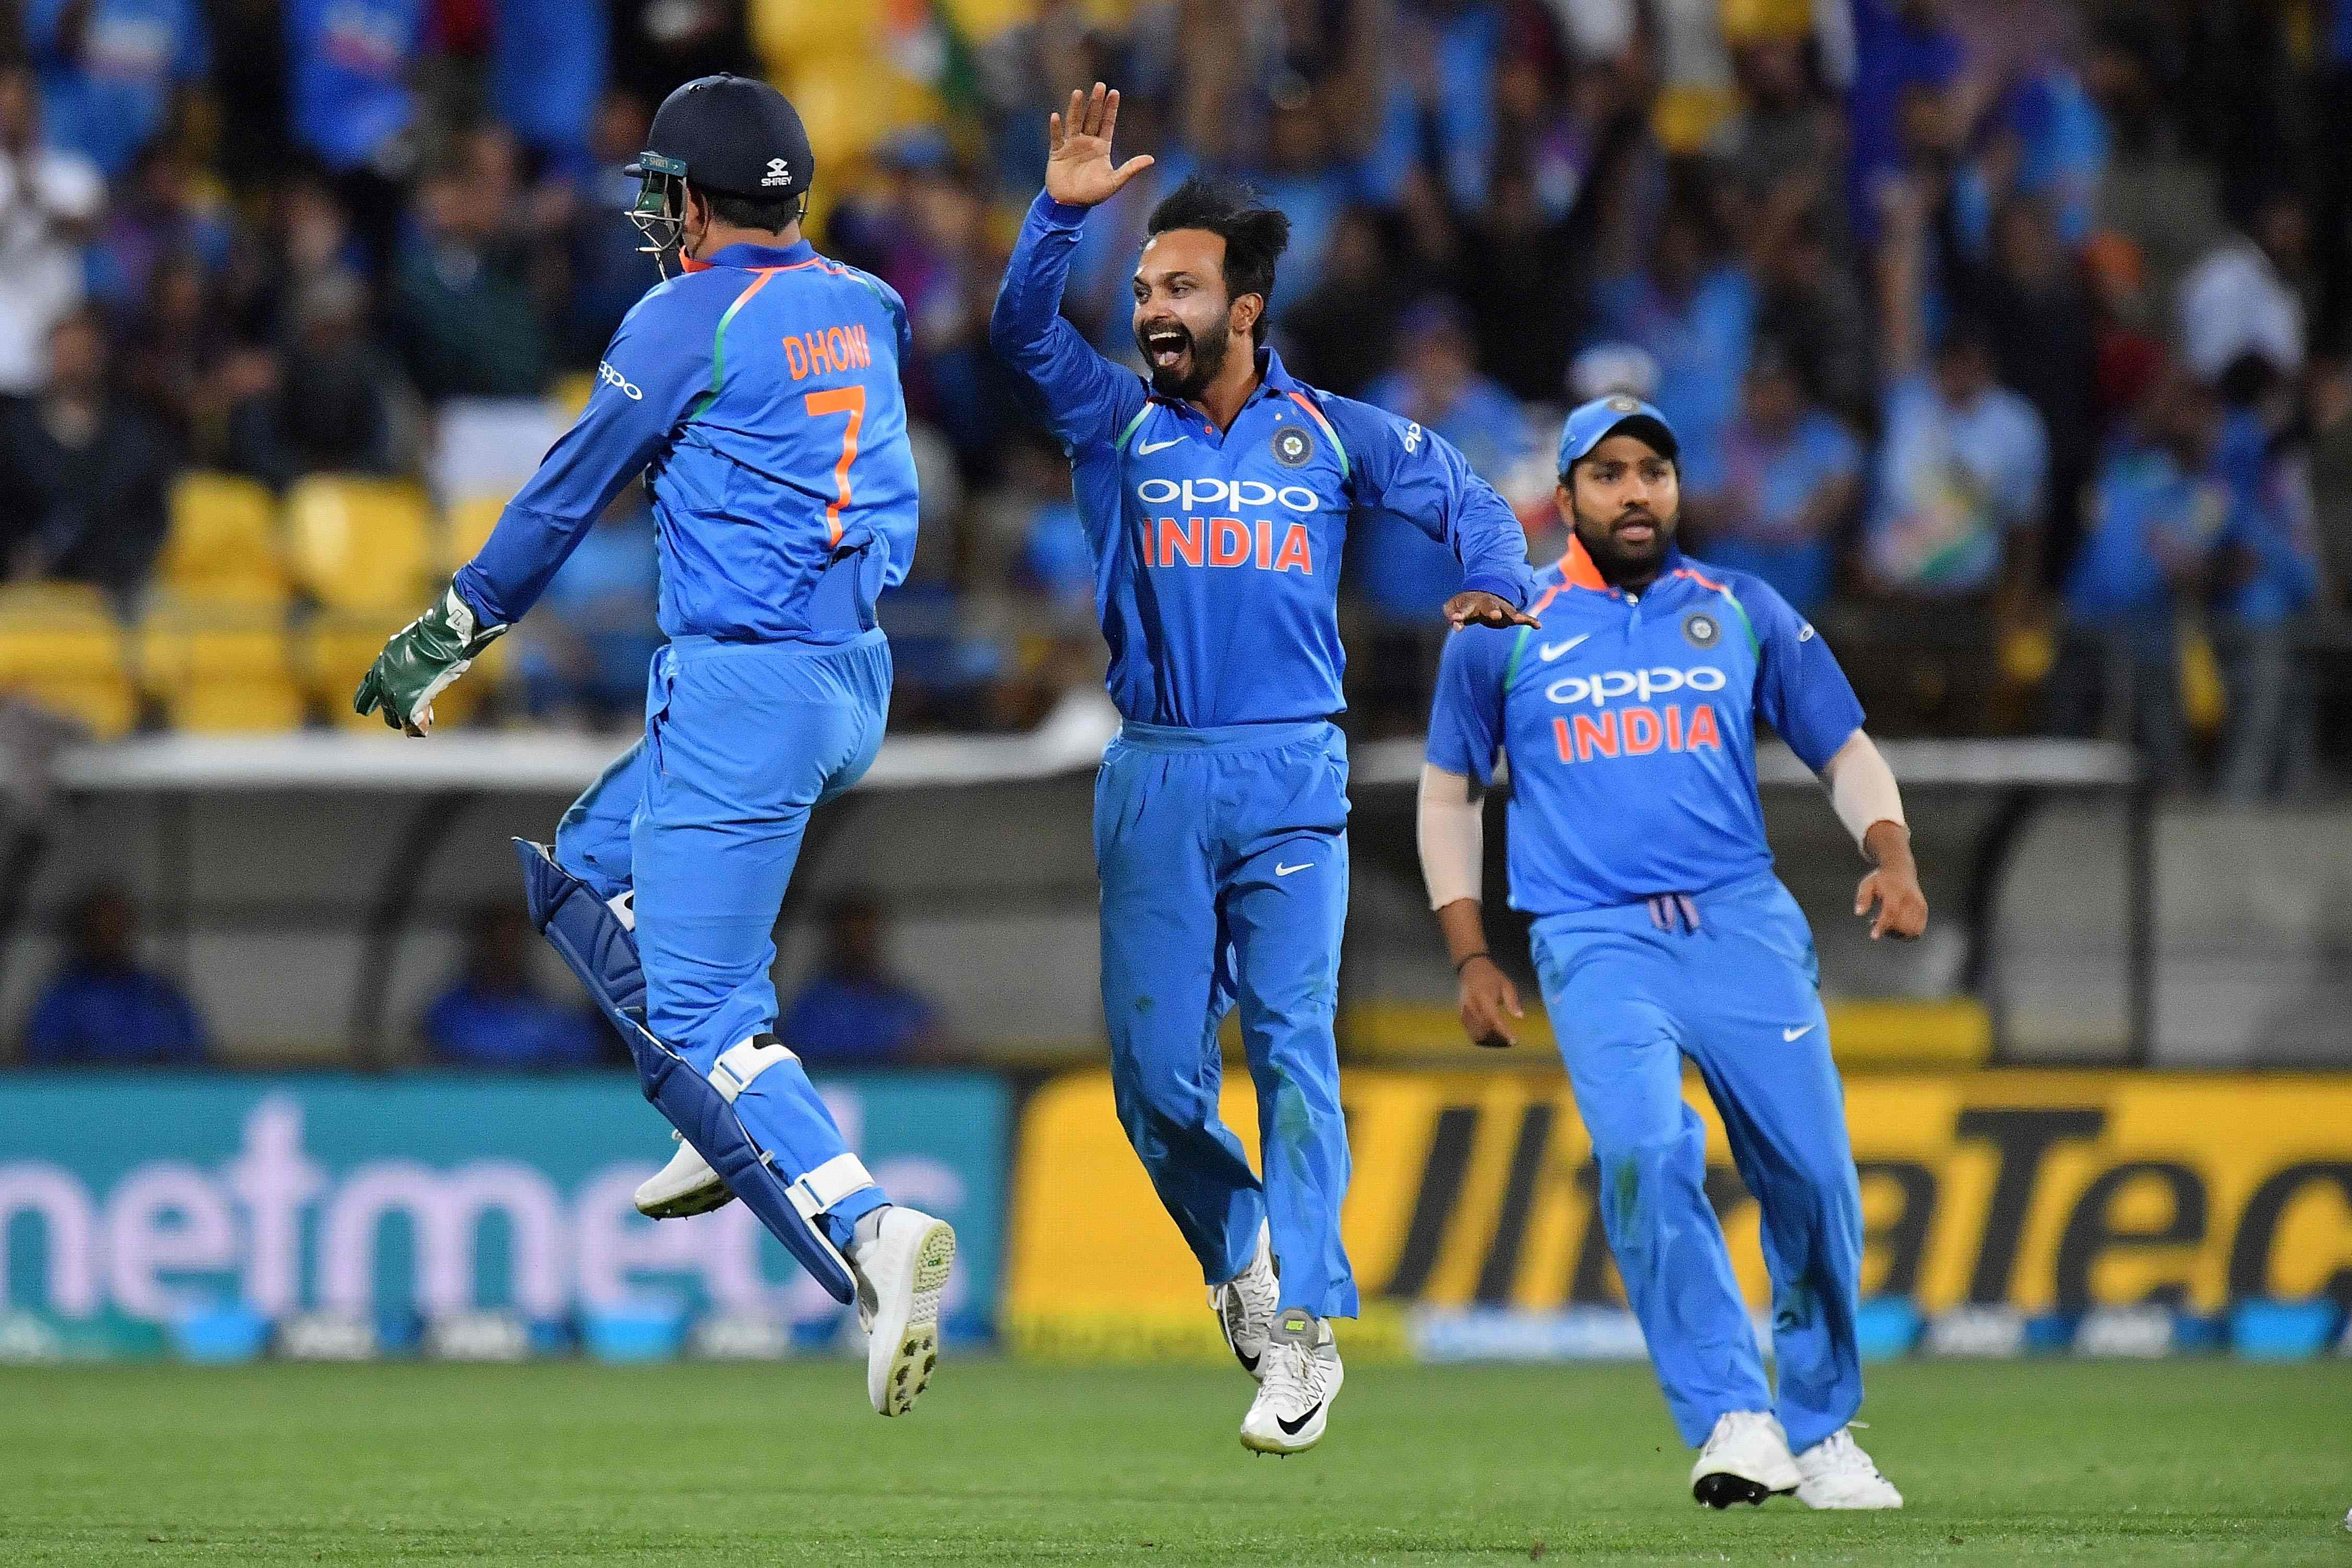 team india will be win cricket world cup : tendulkar